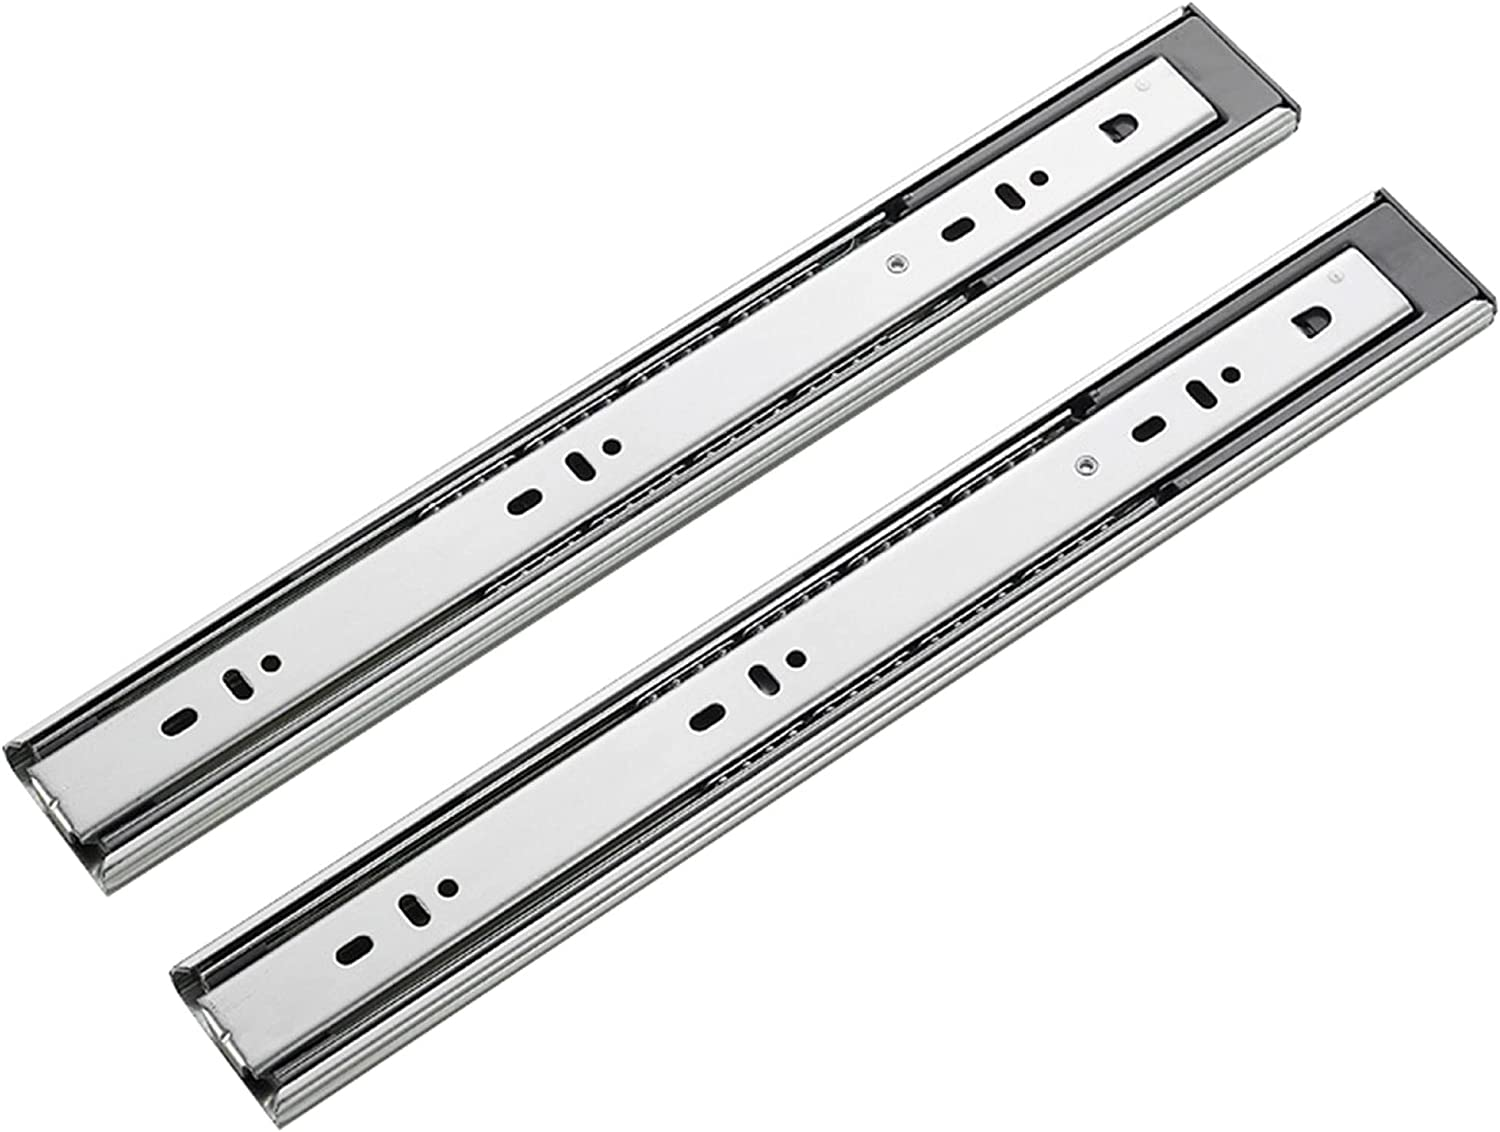 YPHD Drawer Slides Weekly Max 82% OFF update Rails Three-Section Close Bearing Soft